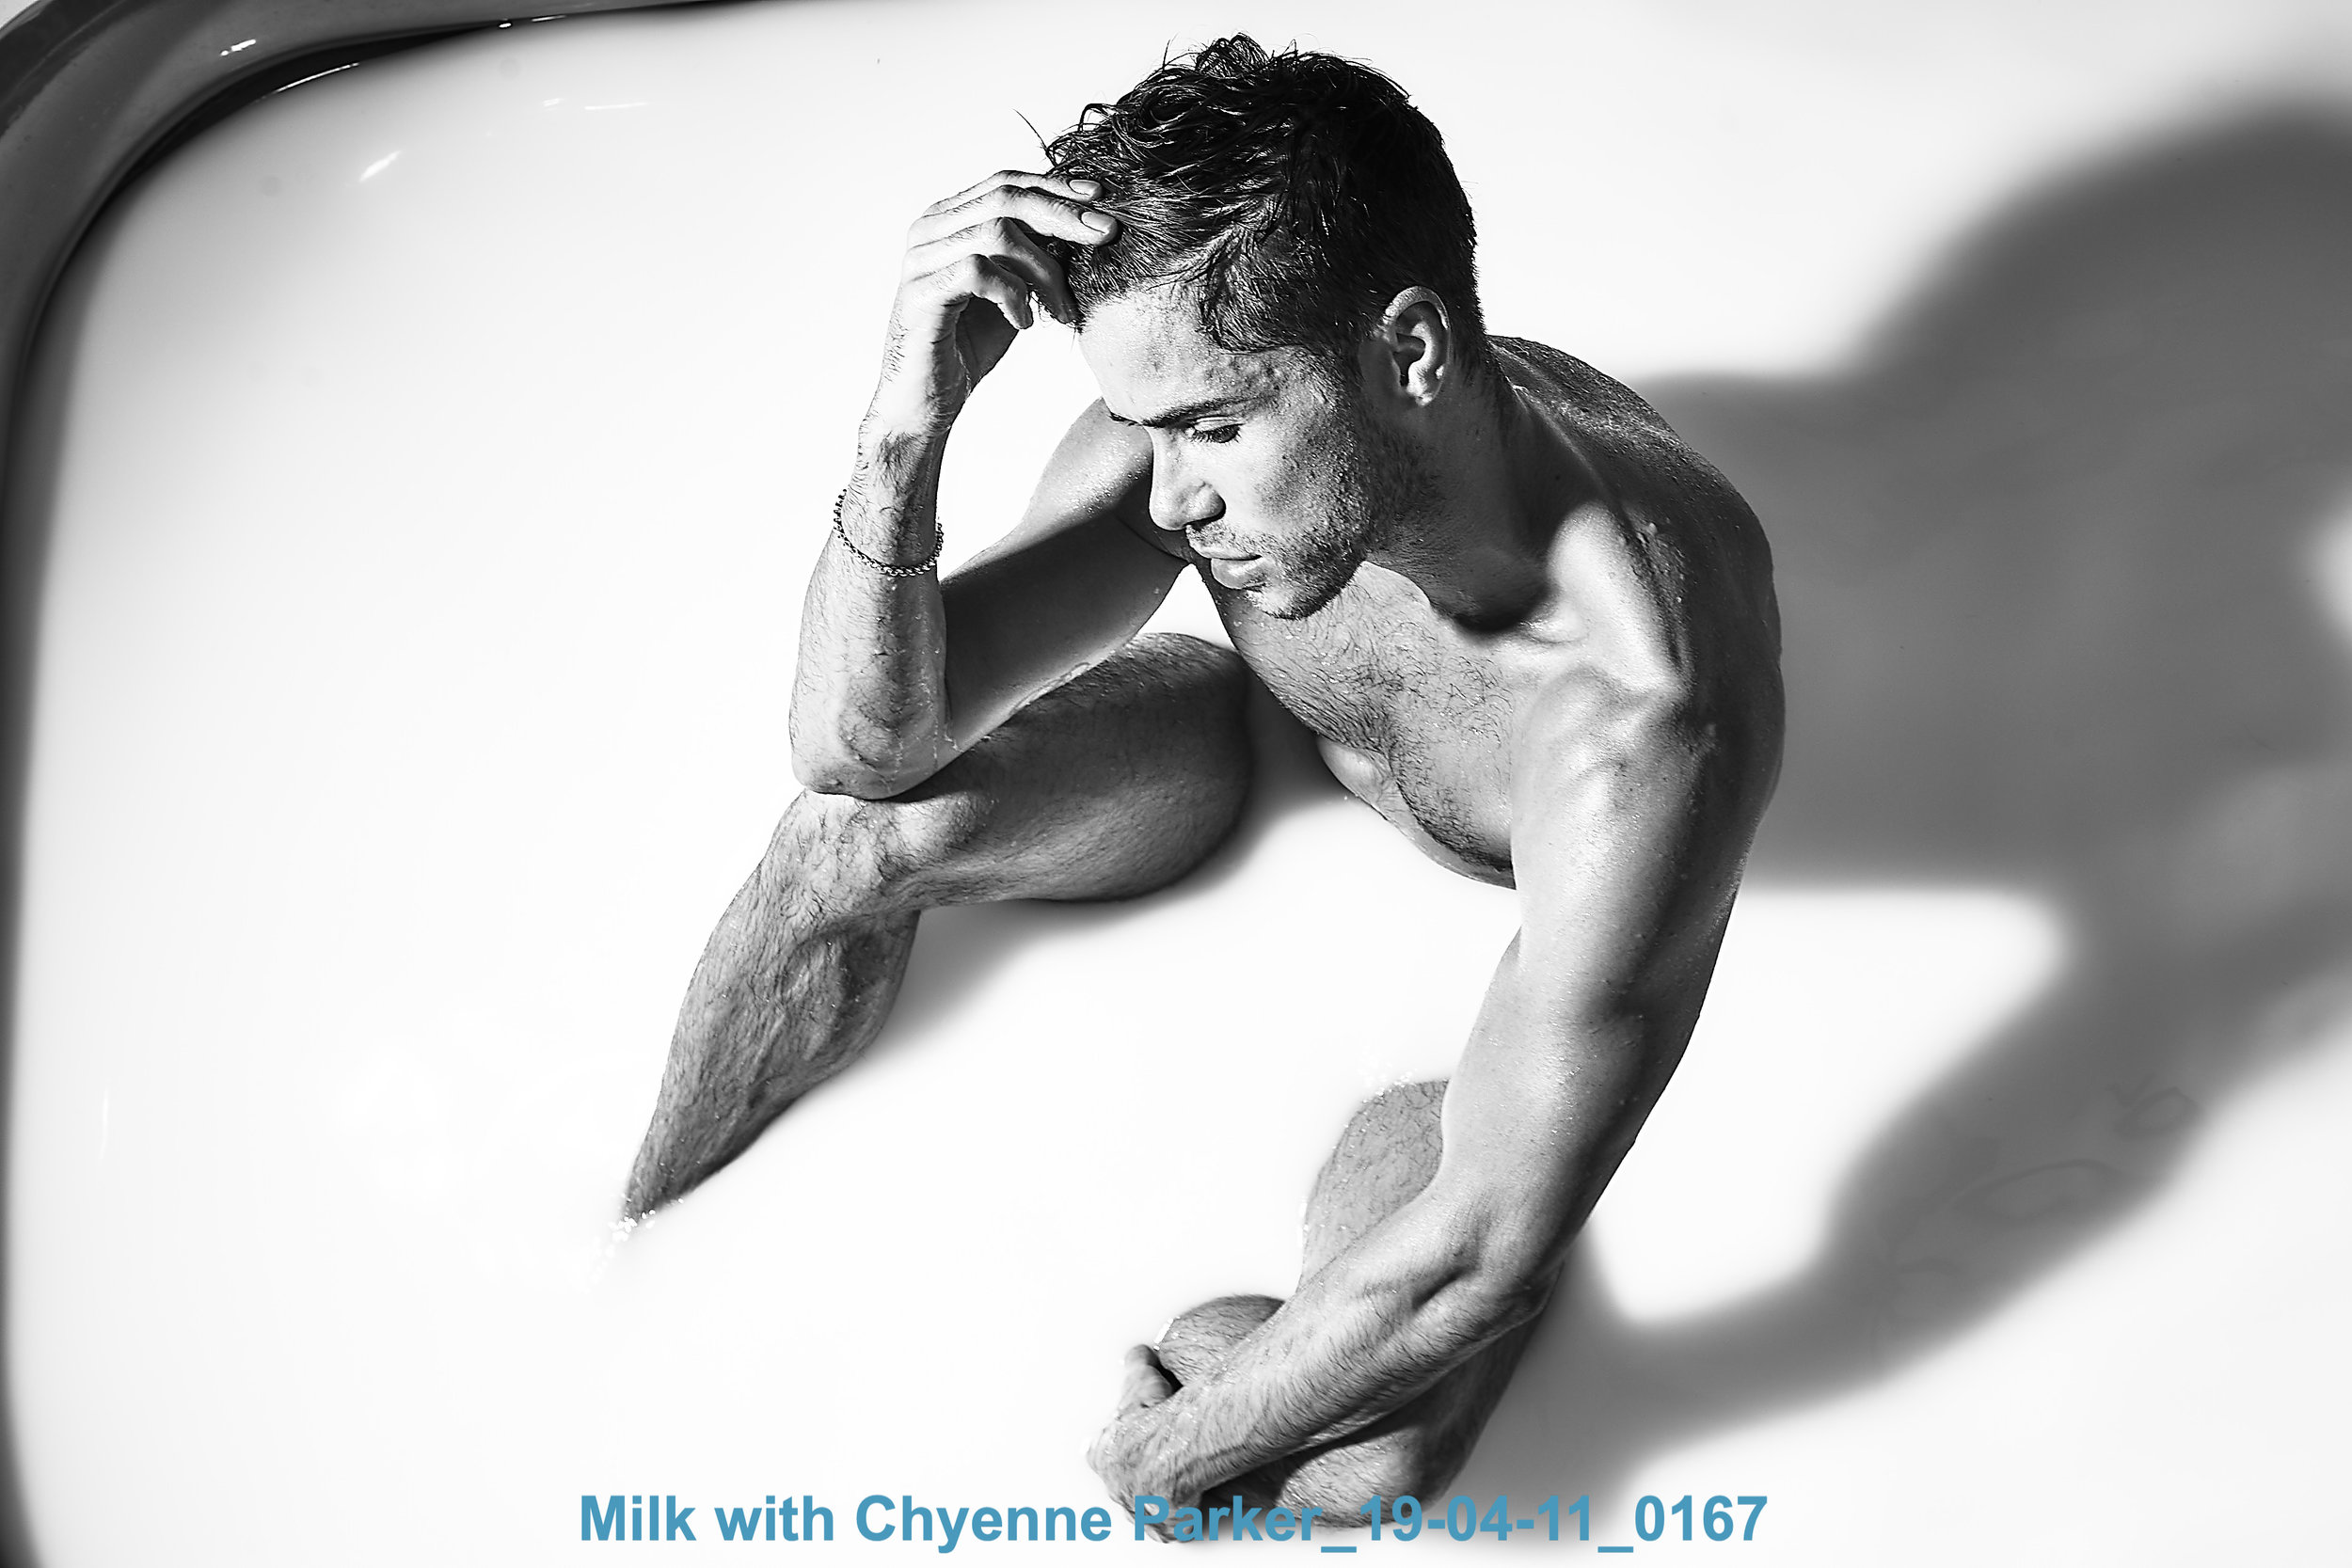 Milk with Chyenne Parker_19-04-11_0167.jpg